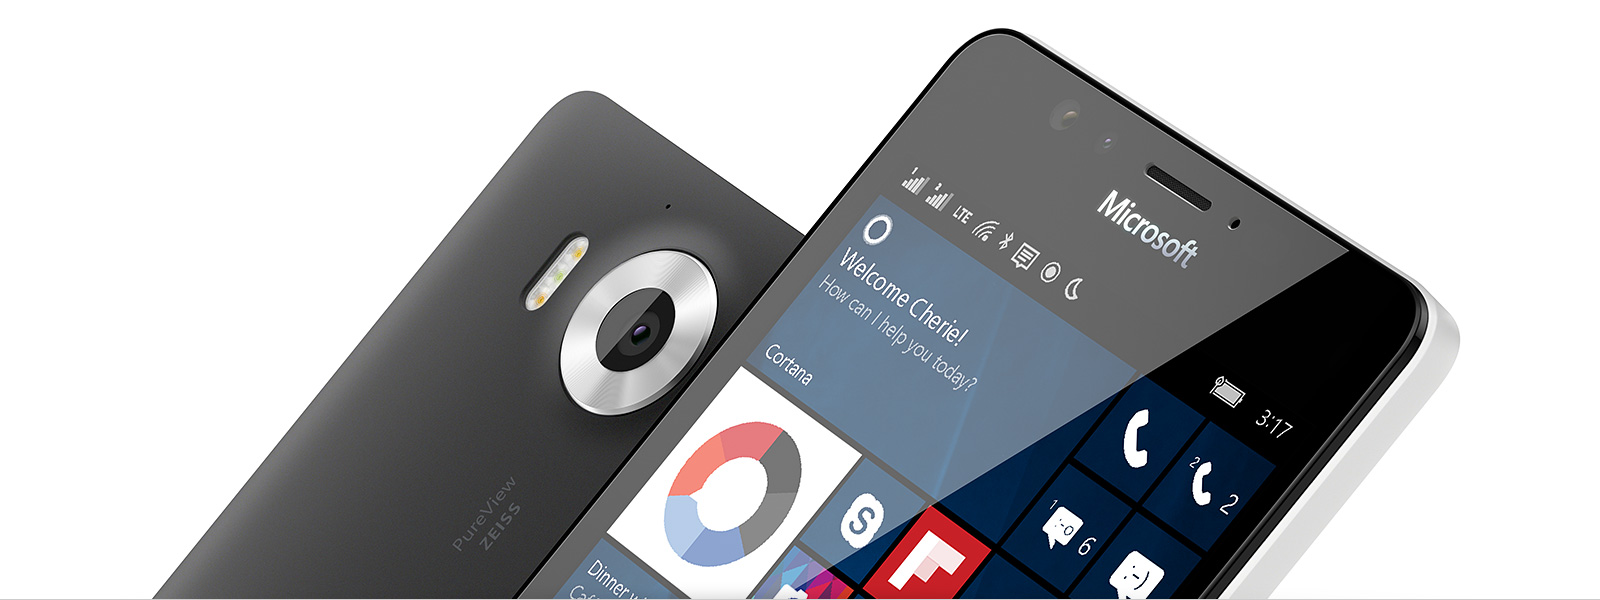 Windows 10 mobiltelefonok